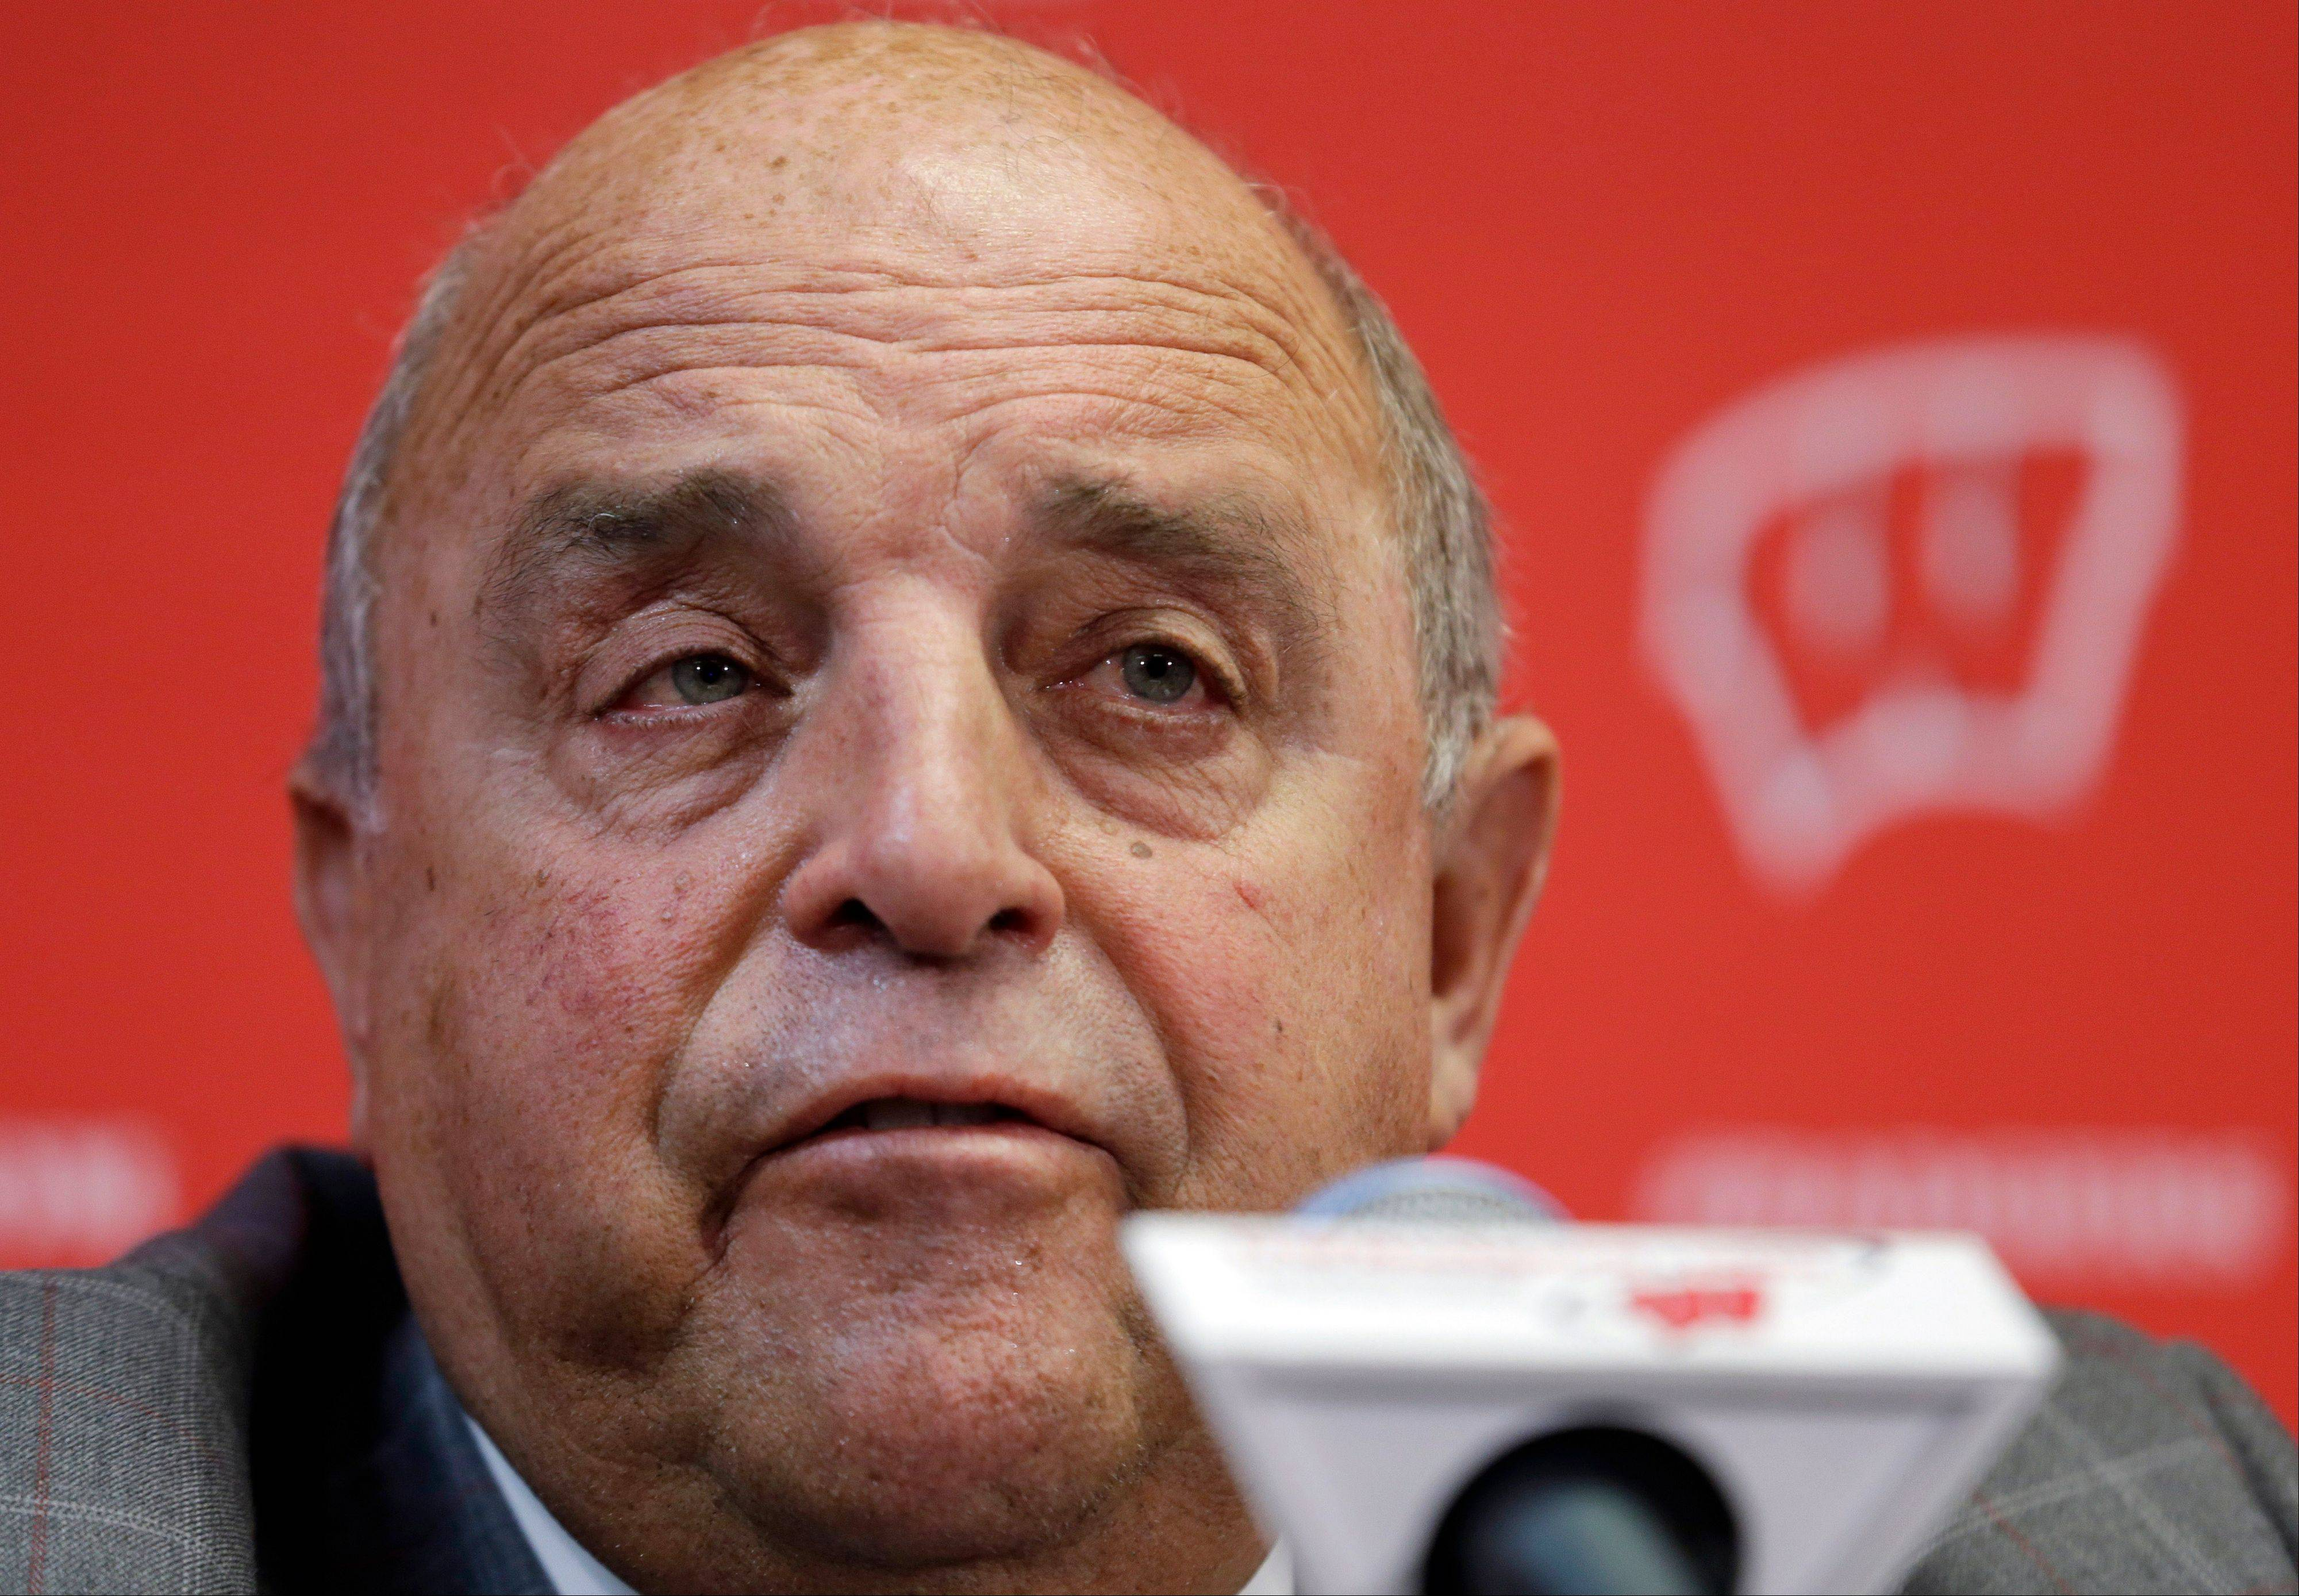 Wisconsin athletic director Barry Alvarez speaks Thursday at a news conference in Madison. Alvarez announced that he will coach the team in this year's Rose Bowl NCAA college football game, replacing former football coach Bret Bielema who took a job as head coach at Arkansas.